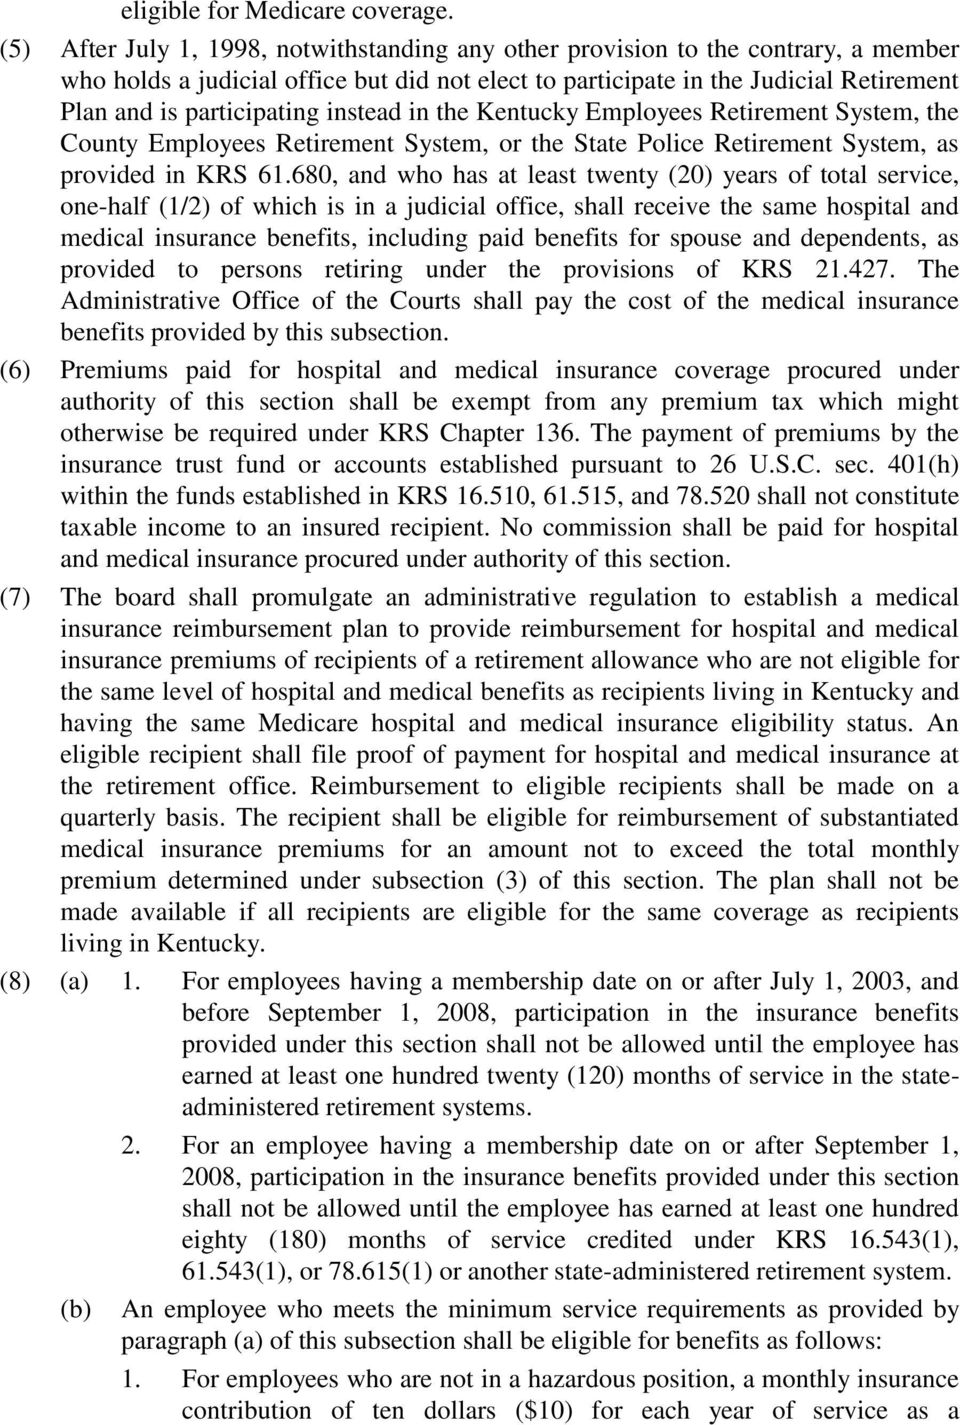 instead in the Kentucky Employees Retirement System, the County Employees Retirement System, or the State Police Retirement System, as provided in KRS 61.